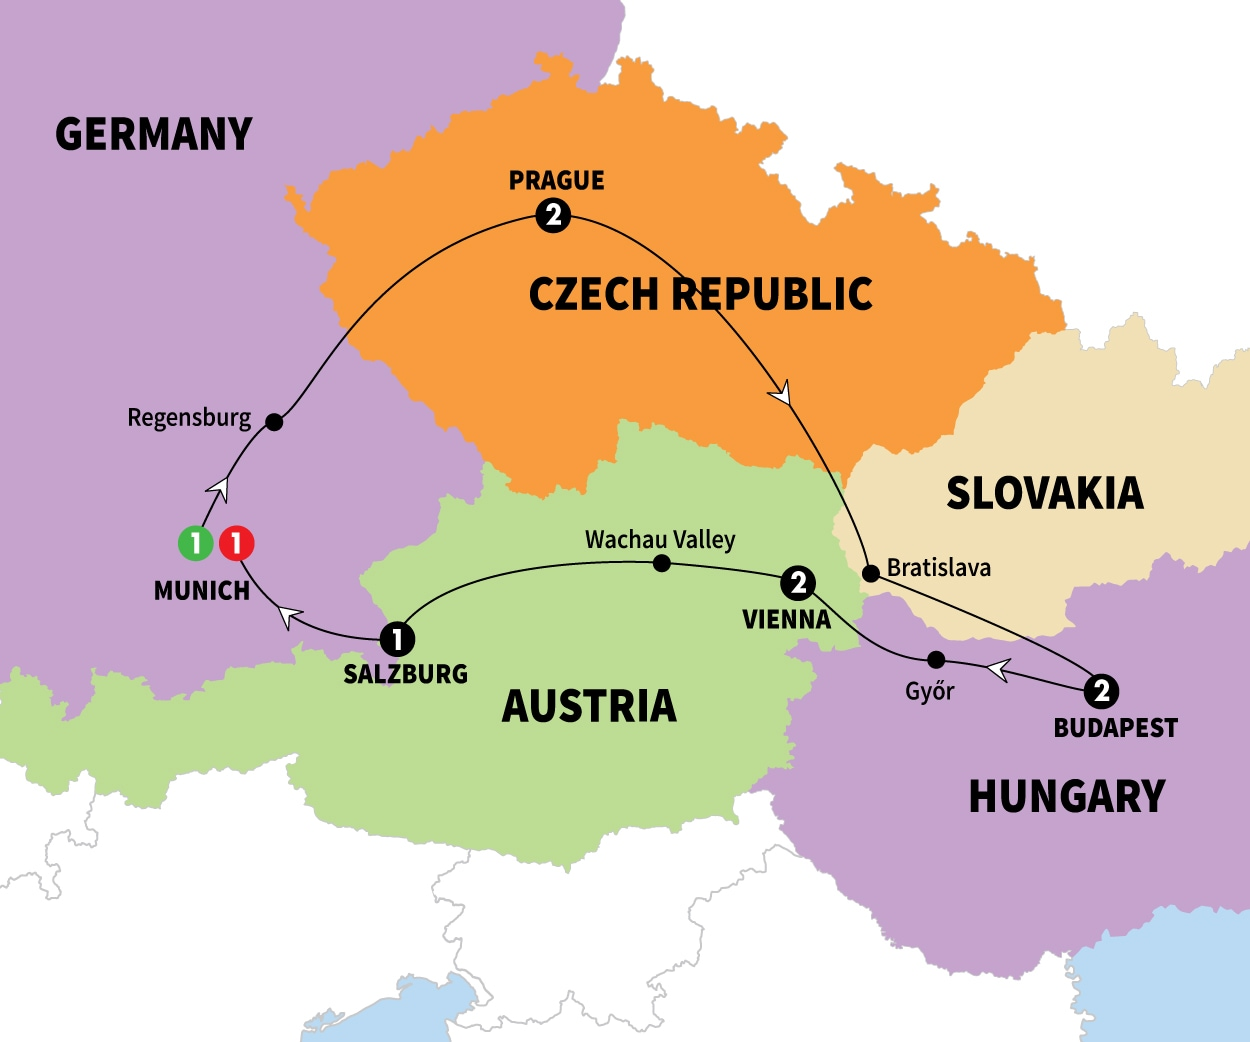 Czech Republic Tours & Czech Republic Holidays | Trafalgar US